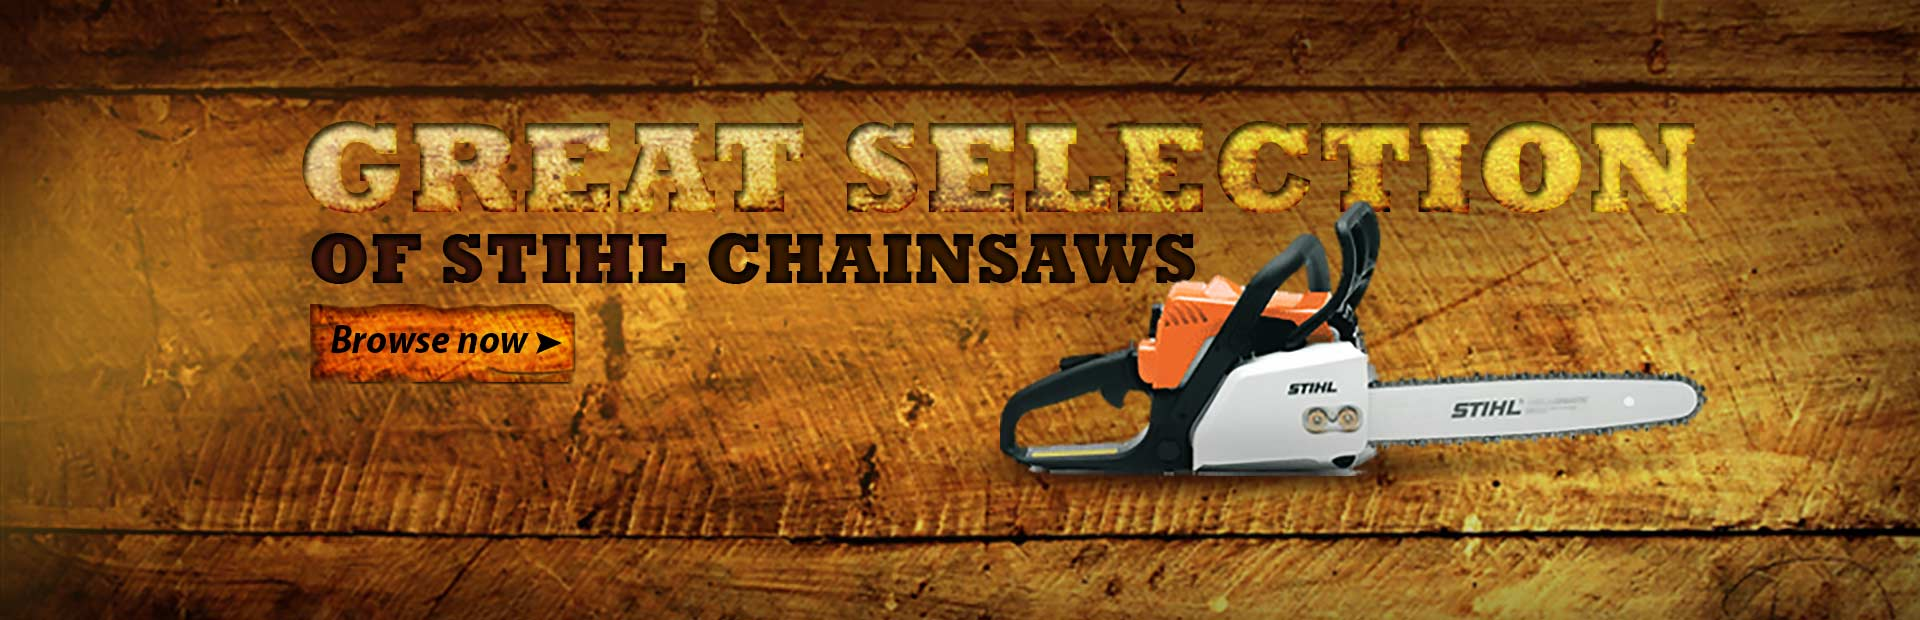 Click here to browse our great selection of STIHL chainsaws.